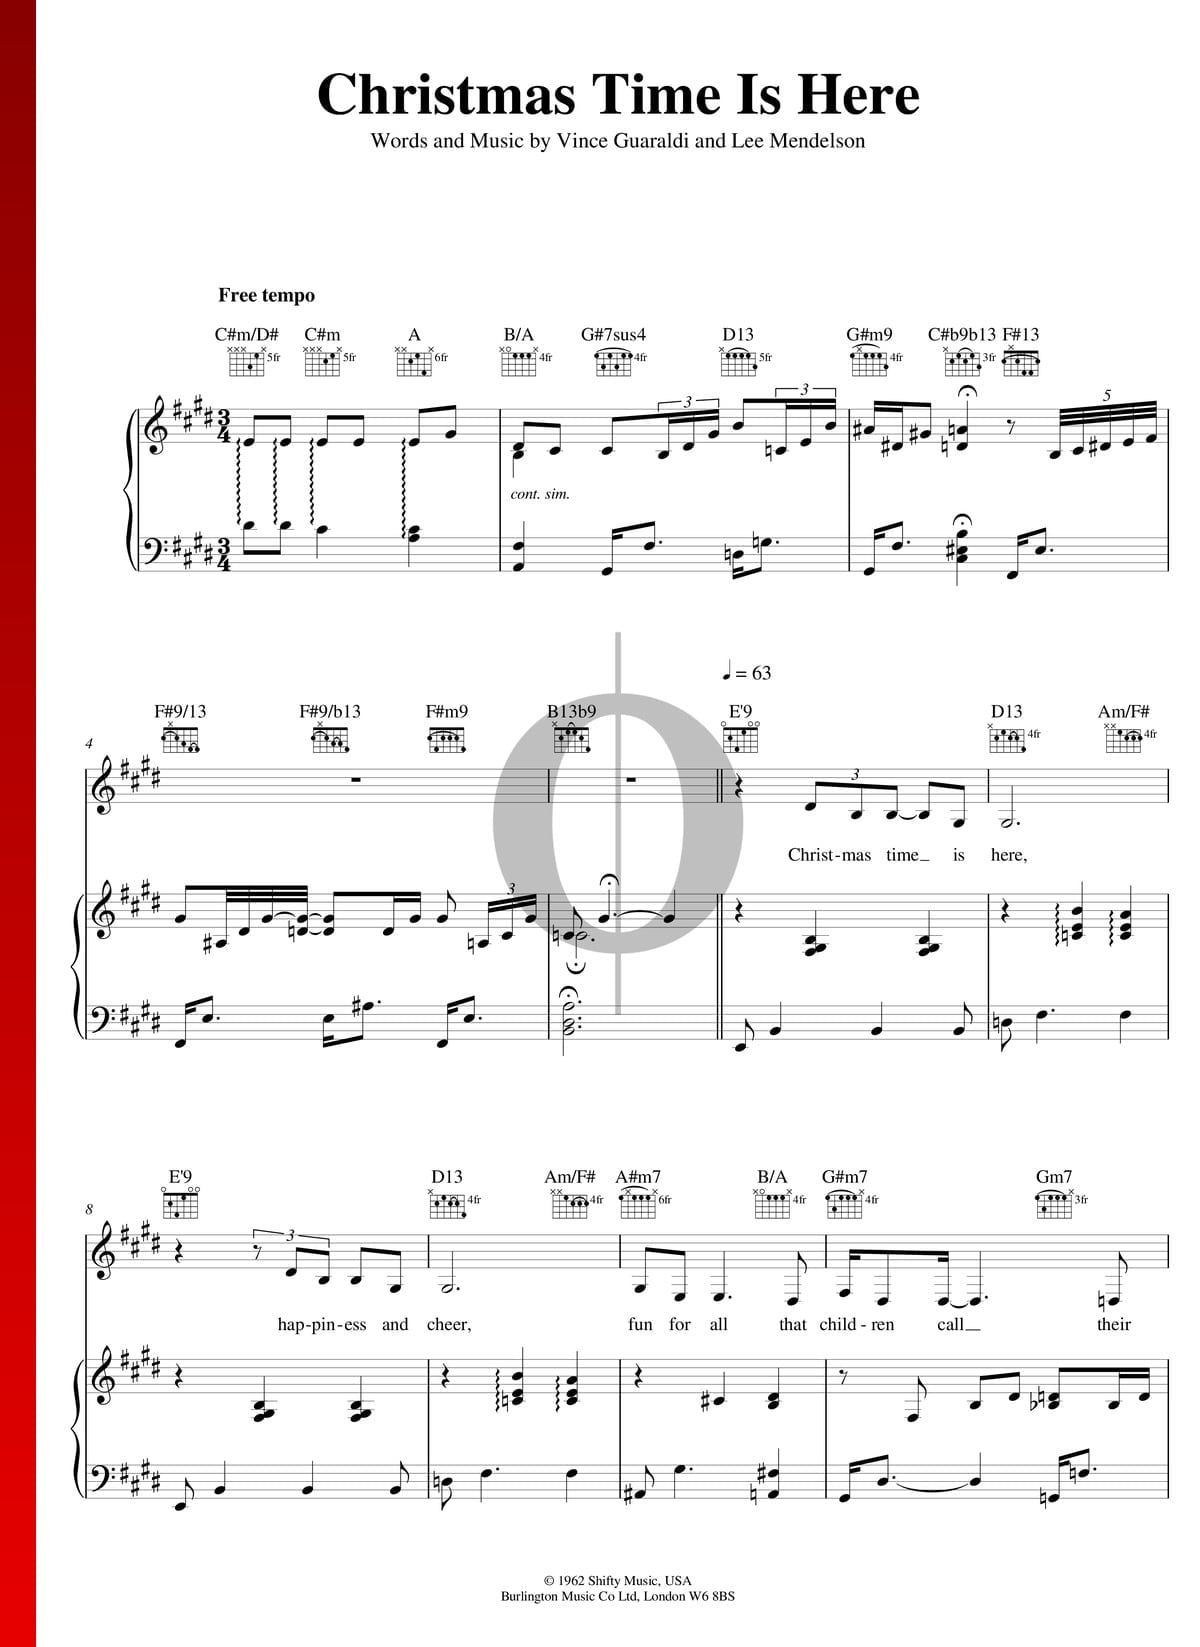 Christmas Time Is Here by Vince Guaraldi Piano Sheet